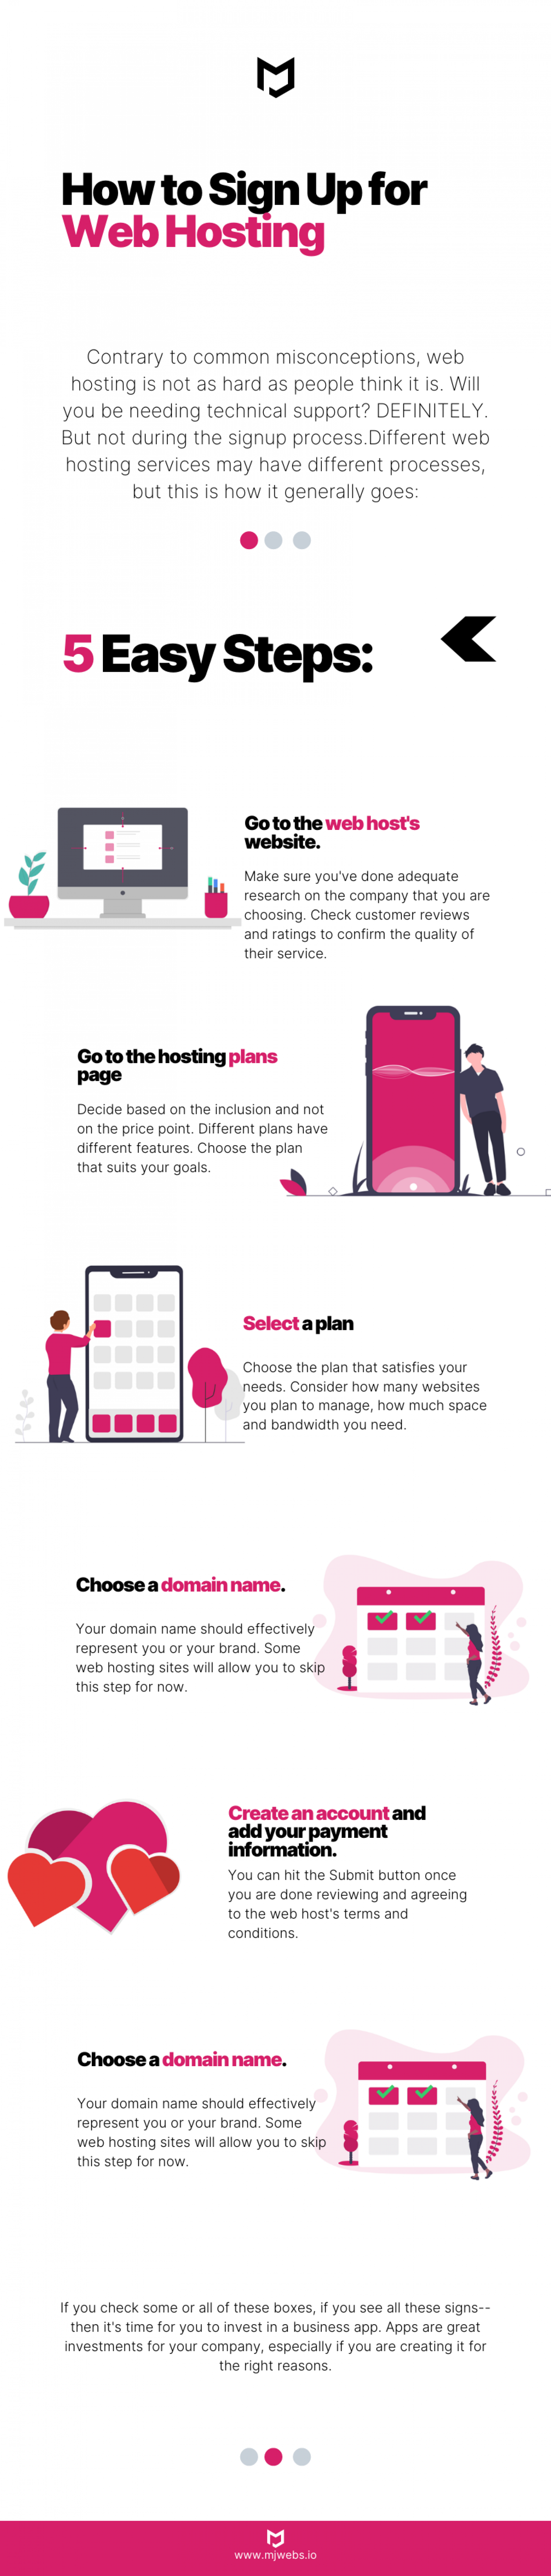 Signing Up for a Web Hosting is EASY! Infographic